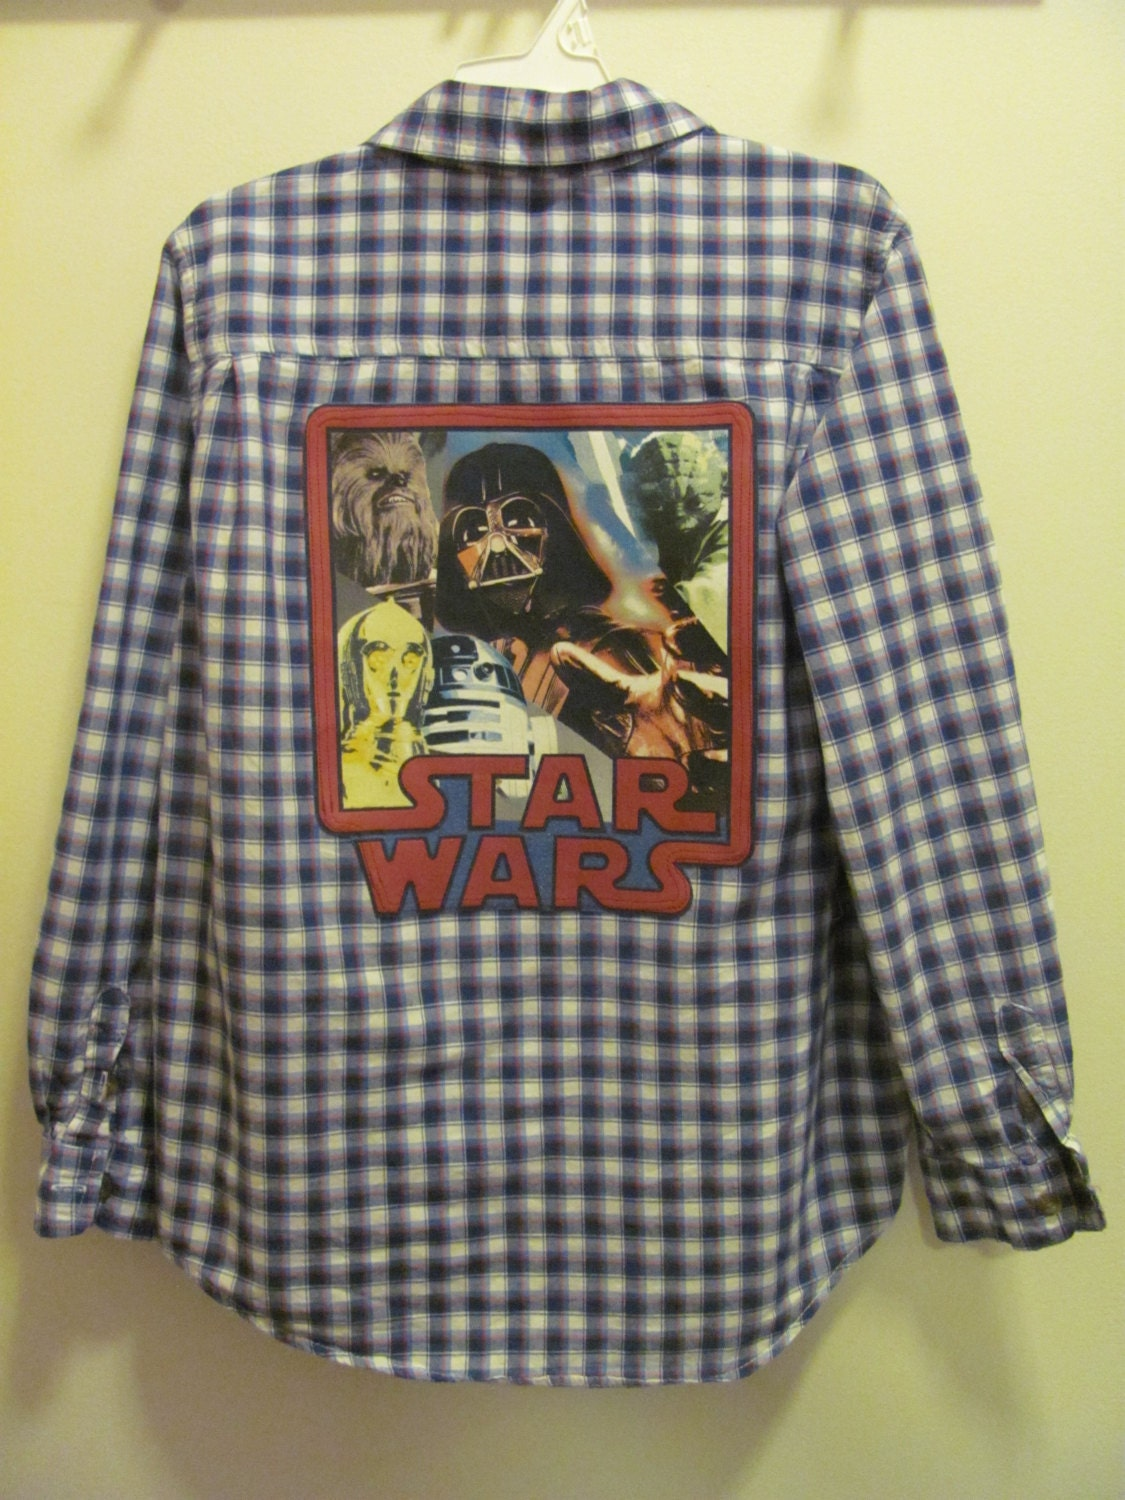 Upcycled plaid dress shirt with star wars graphic on back for Shirts with graphics on the back